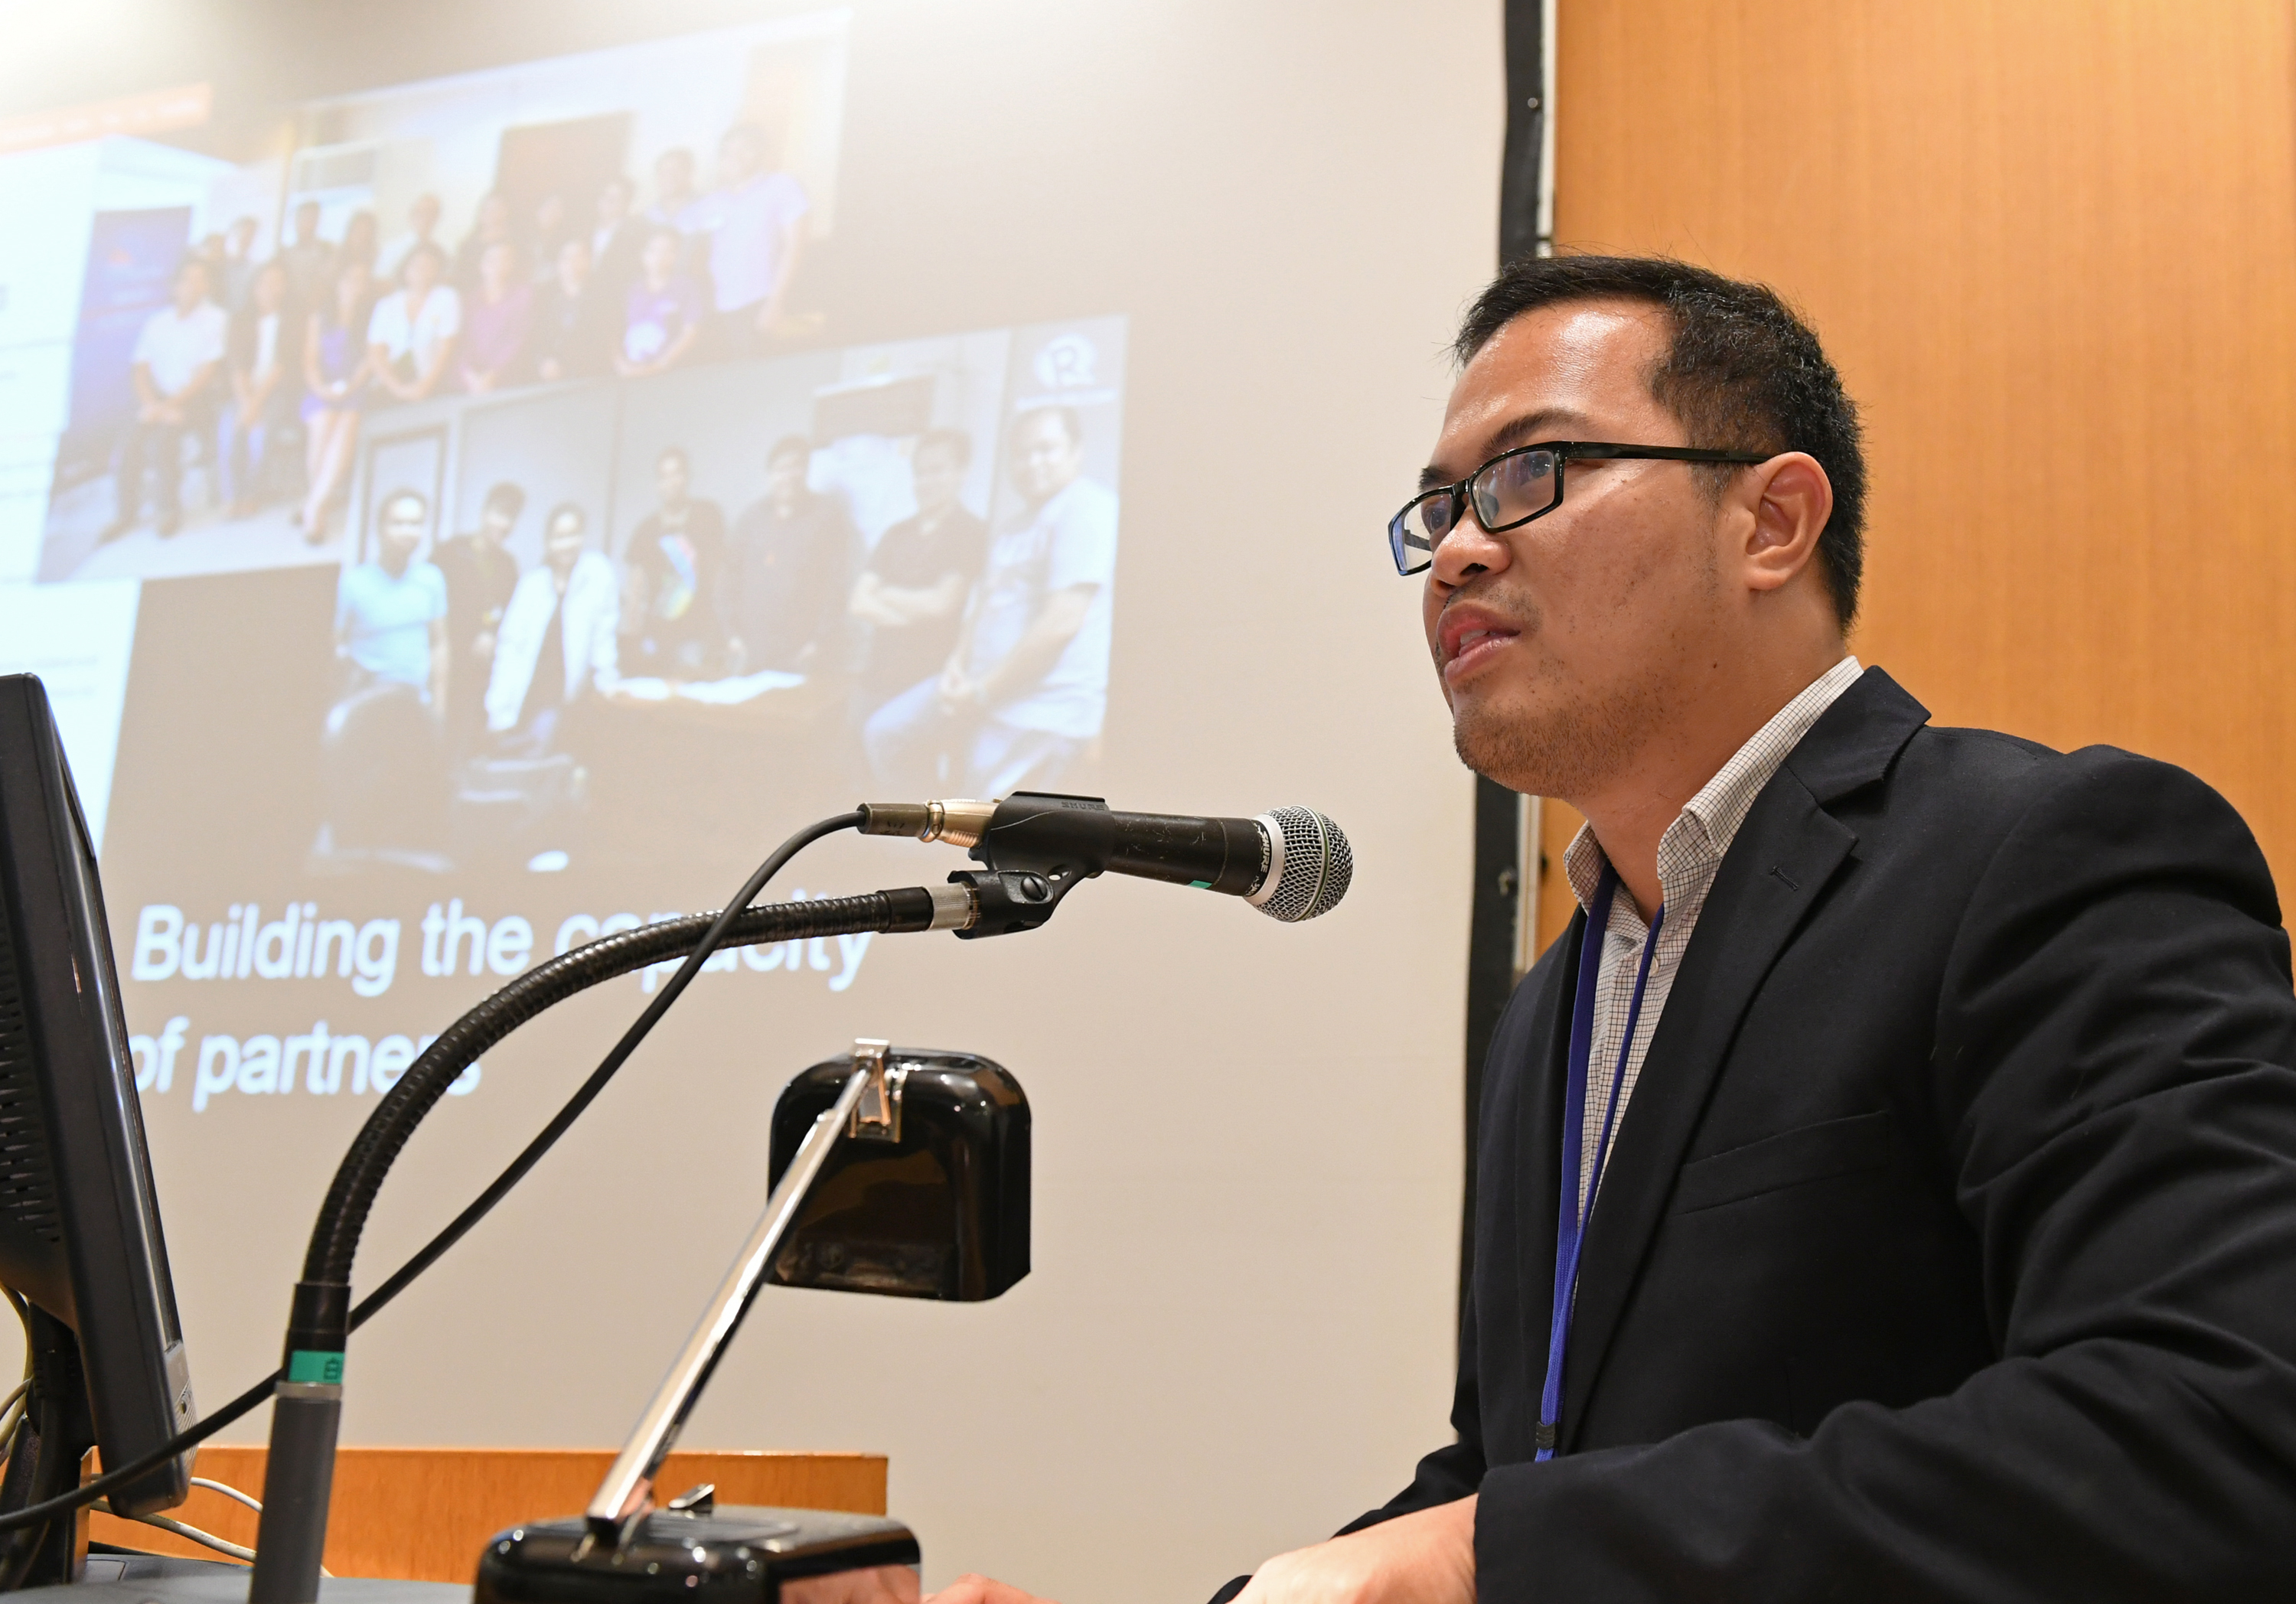 WORLD BOSAI FORUM. MovePH editor Voltaire Tupaz delivers a speech at the World Bosai Forum/International Disaster and Risk Conference held in Sendai, Japan from November 25 to 28, 2017. Photo courtesy of Kahoku Shimpo Publishing Co.